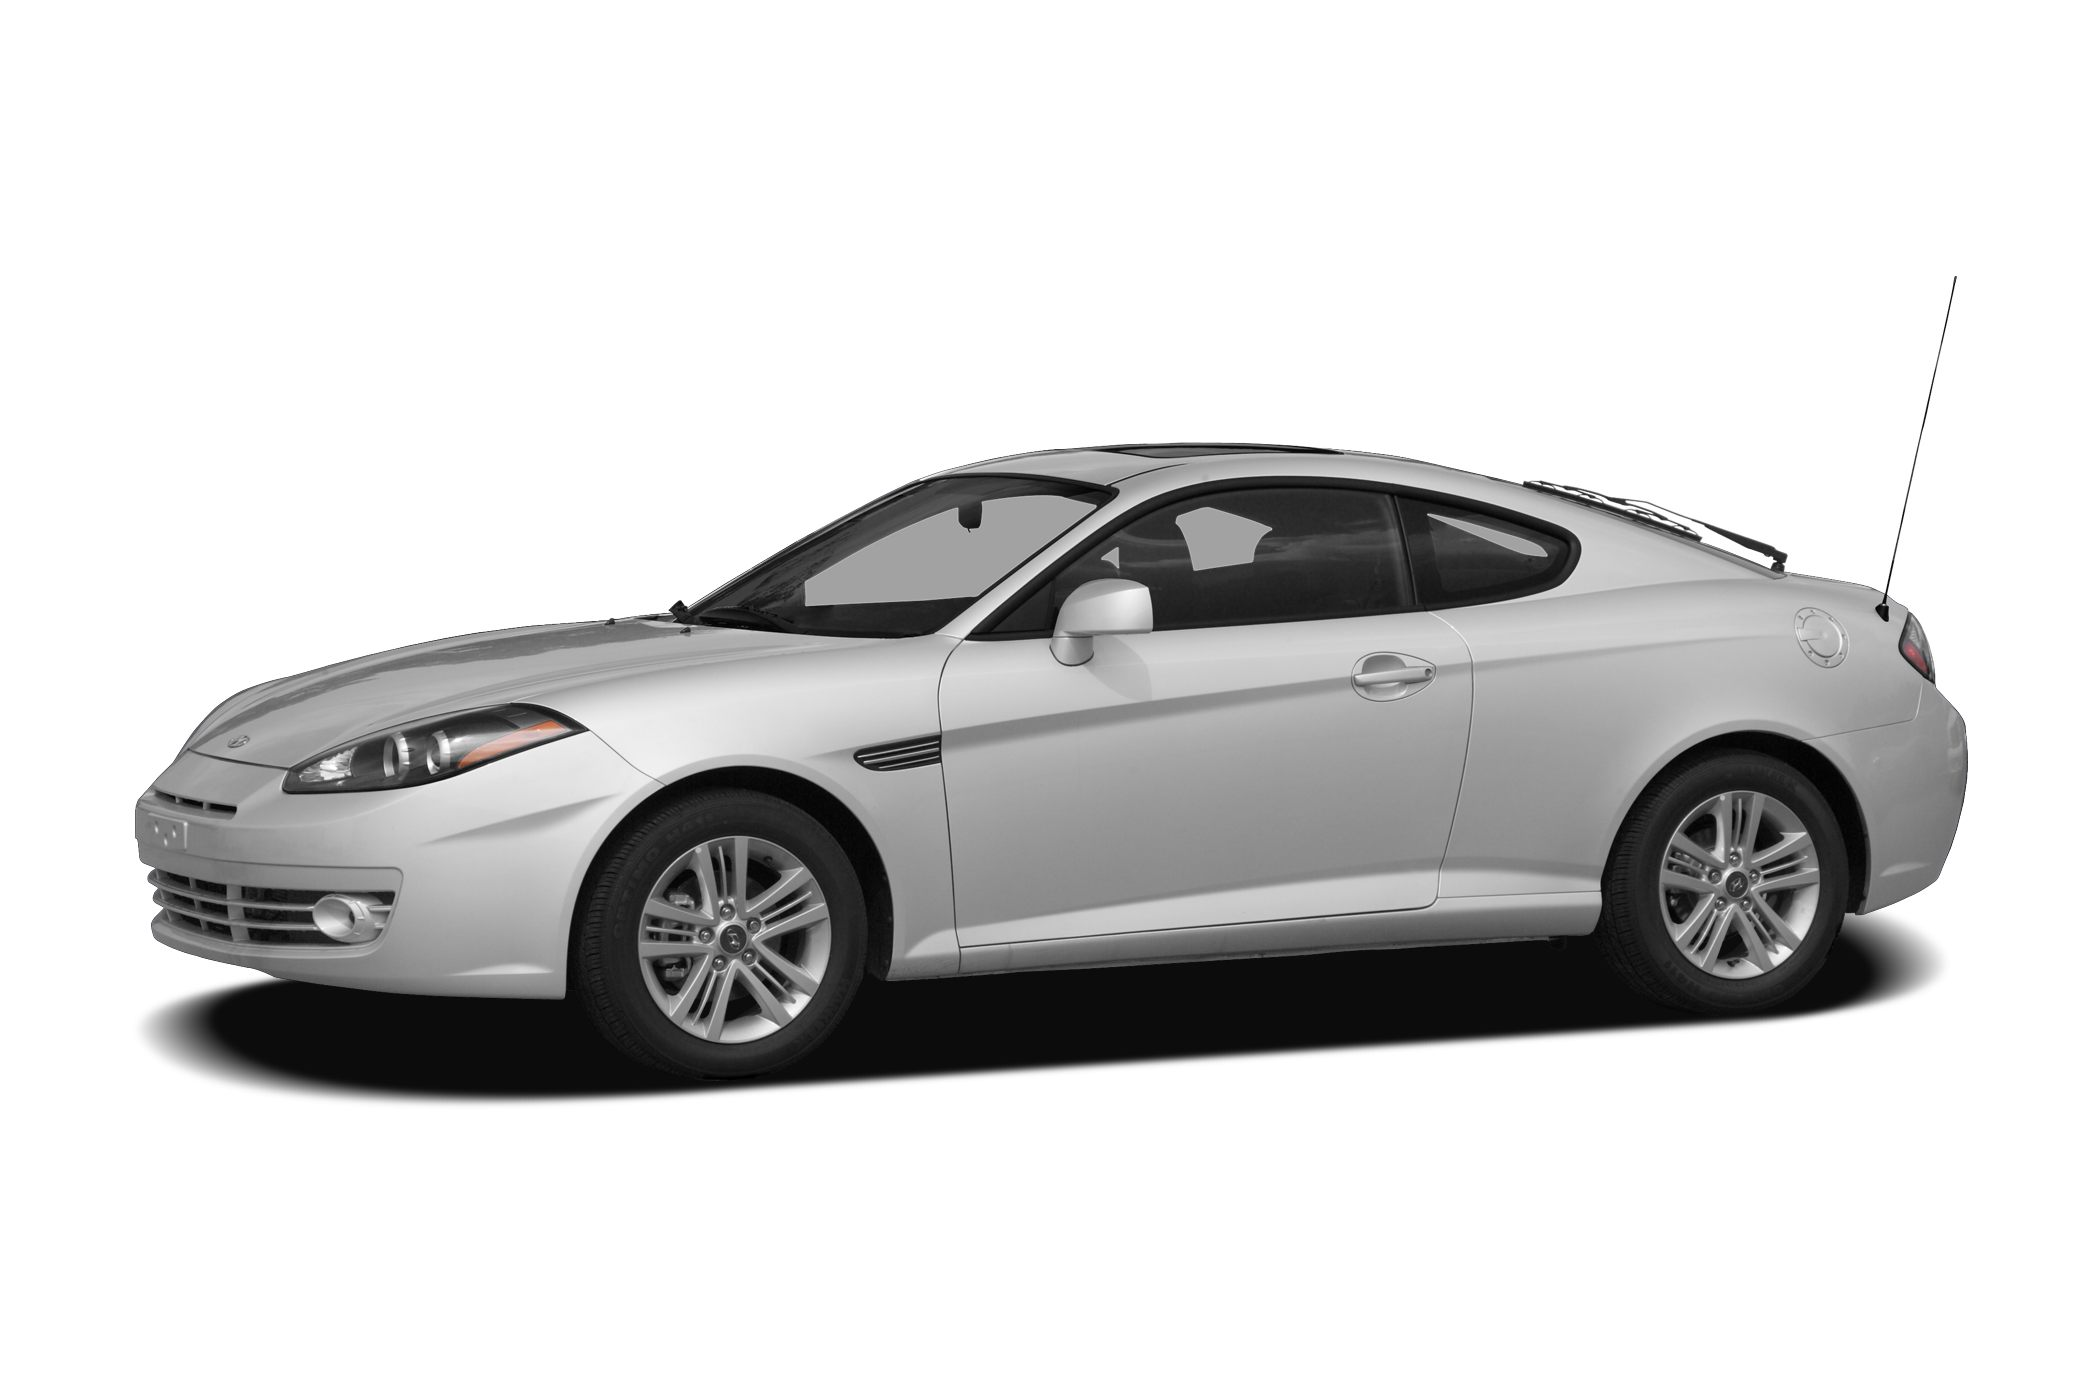 2007 Hyundai Tiburon GT Coupe for sale in Louisville for $7,500 with 132,045 miles.